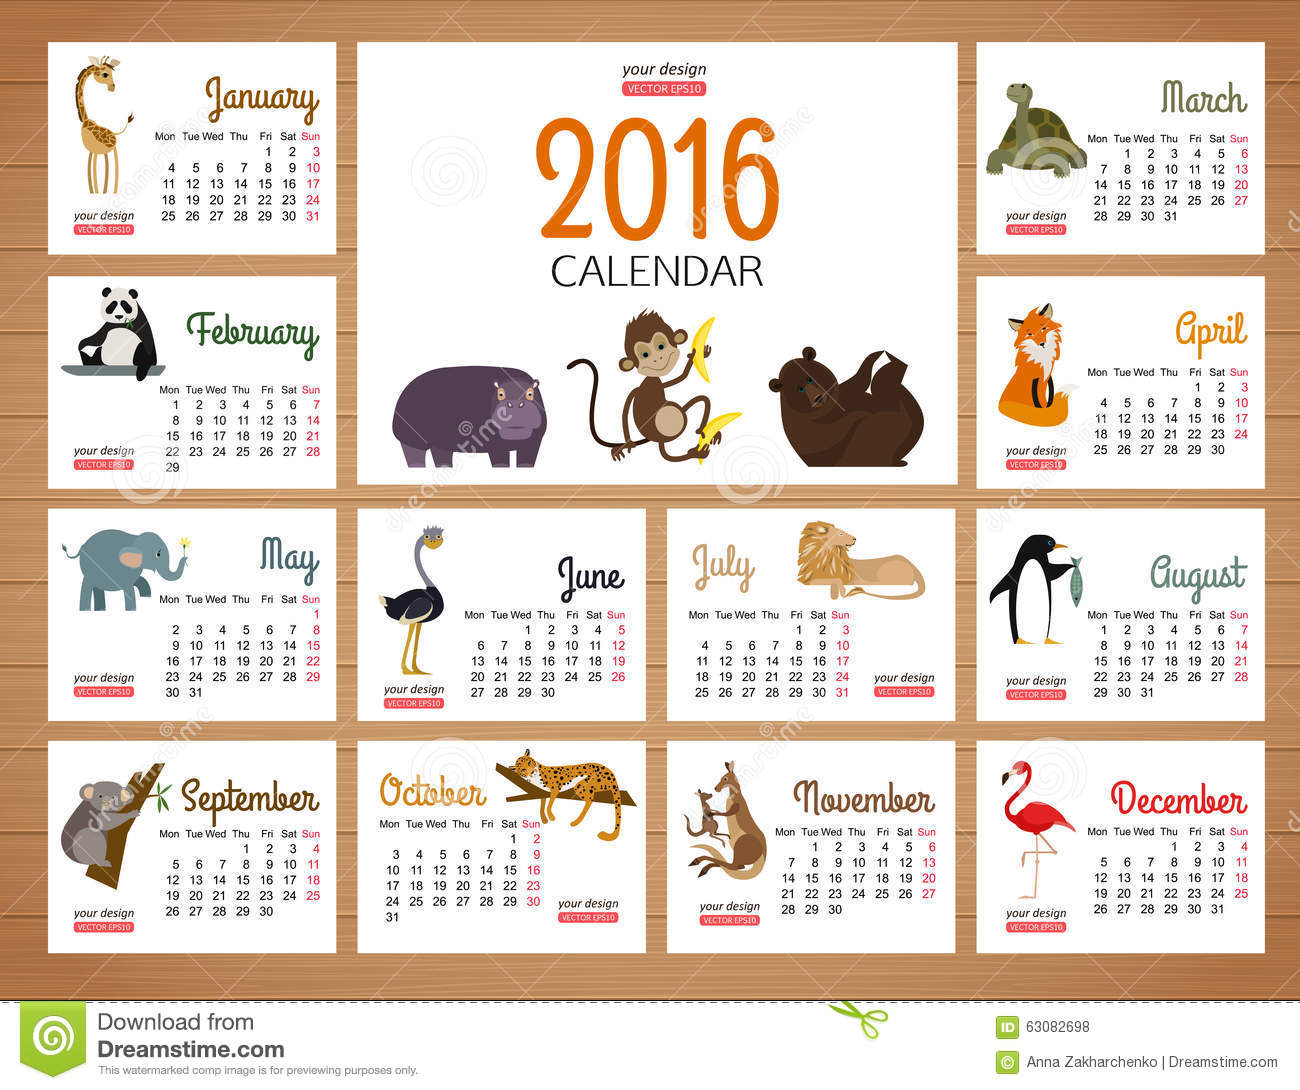 Download Calibre D'impression De Vecteur De Calendrier De Bureau Avec Le Zoo Illustration de Vecteur - Illustration du européen, gosses: 63082698